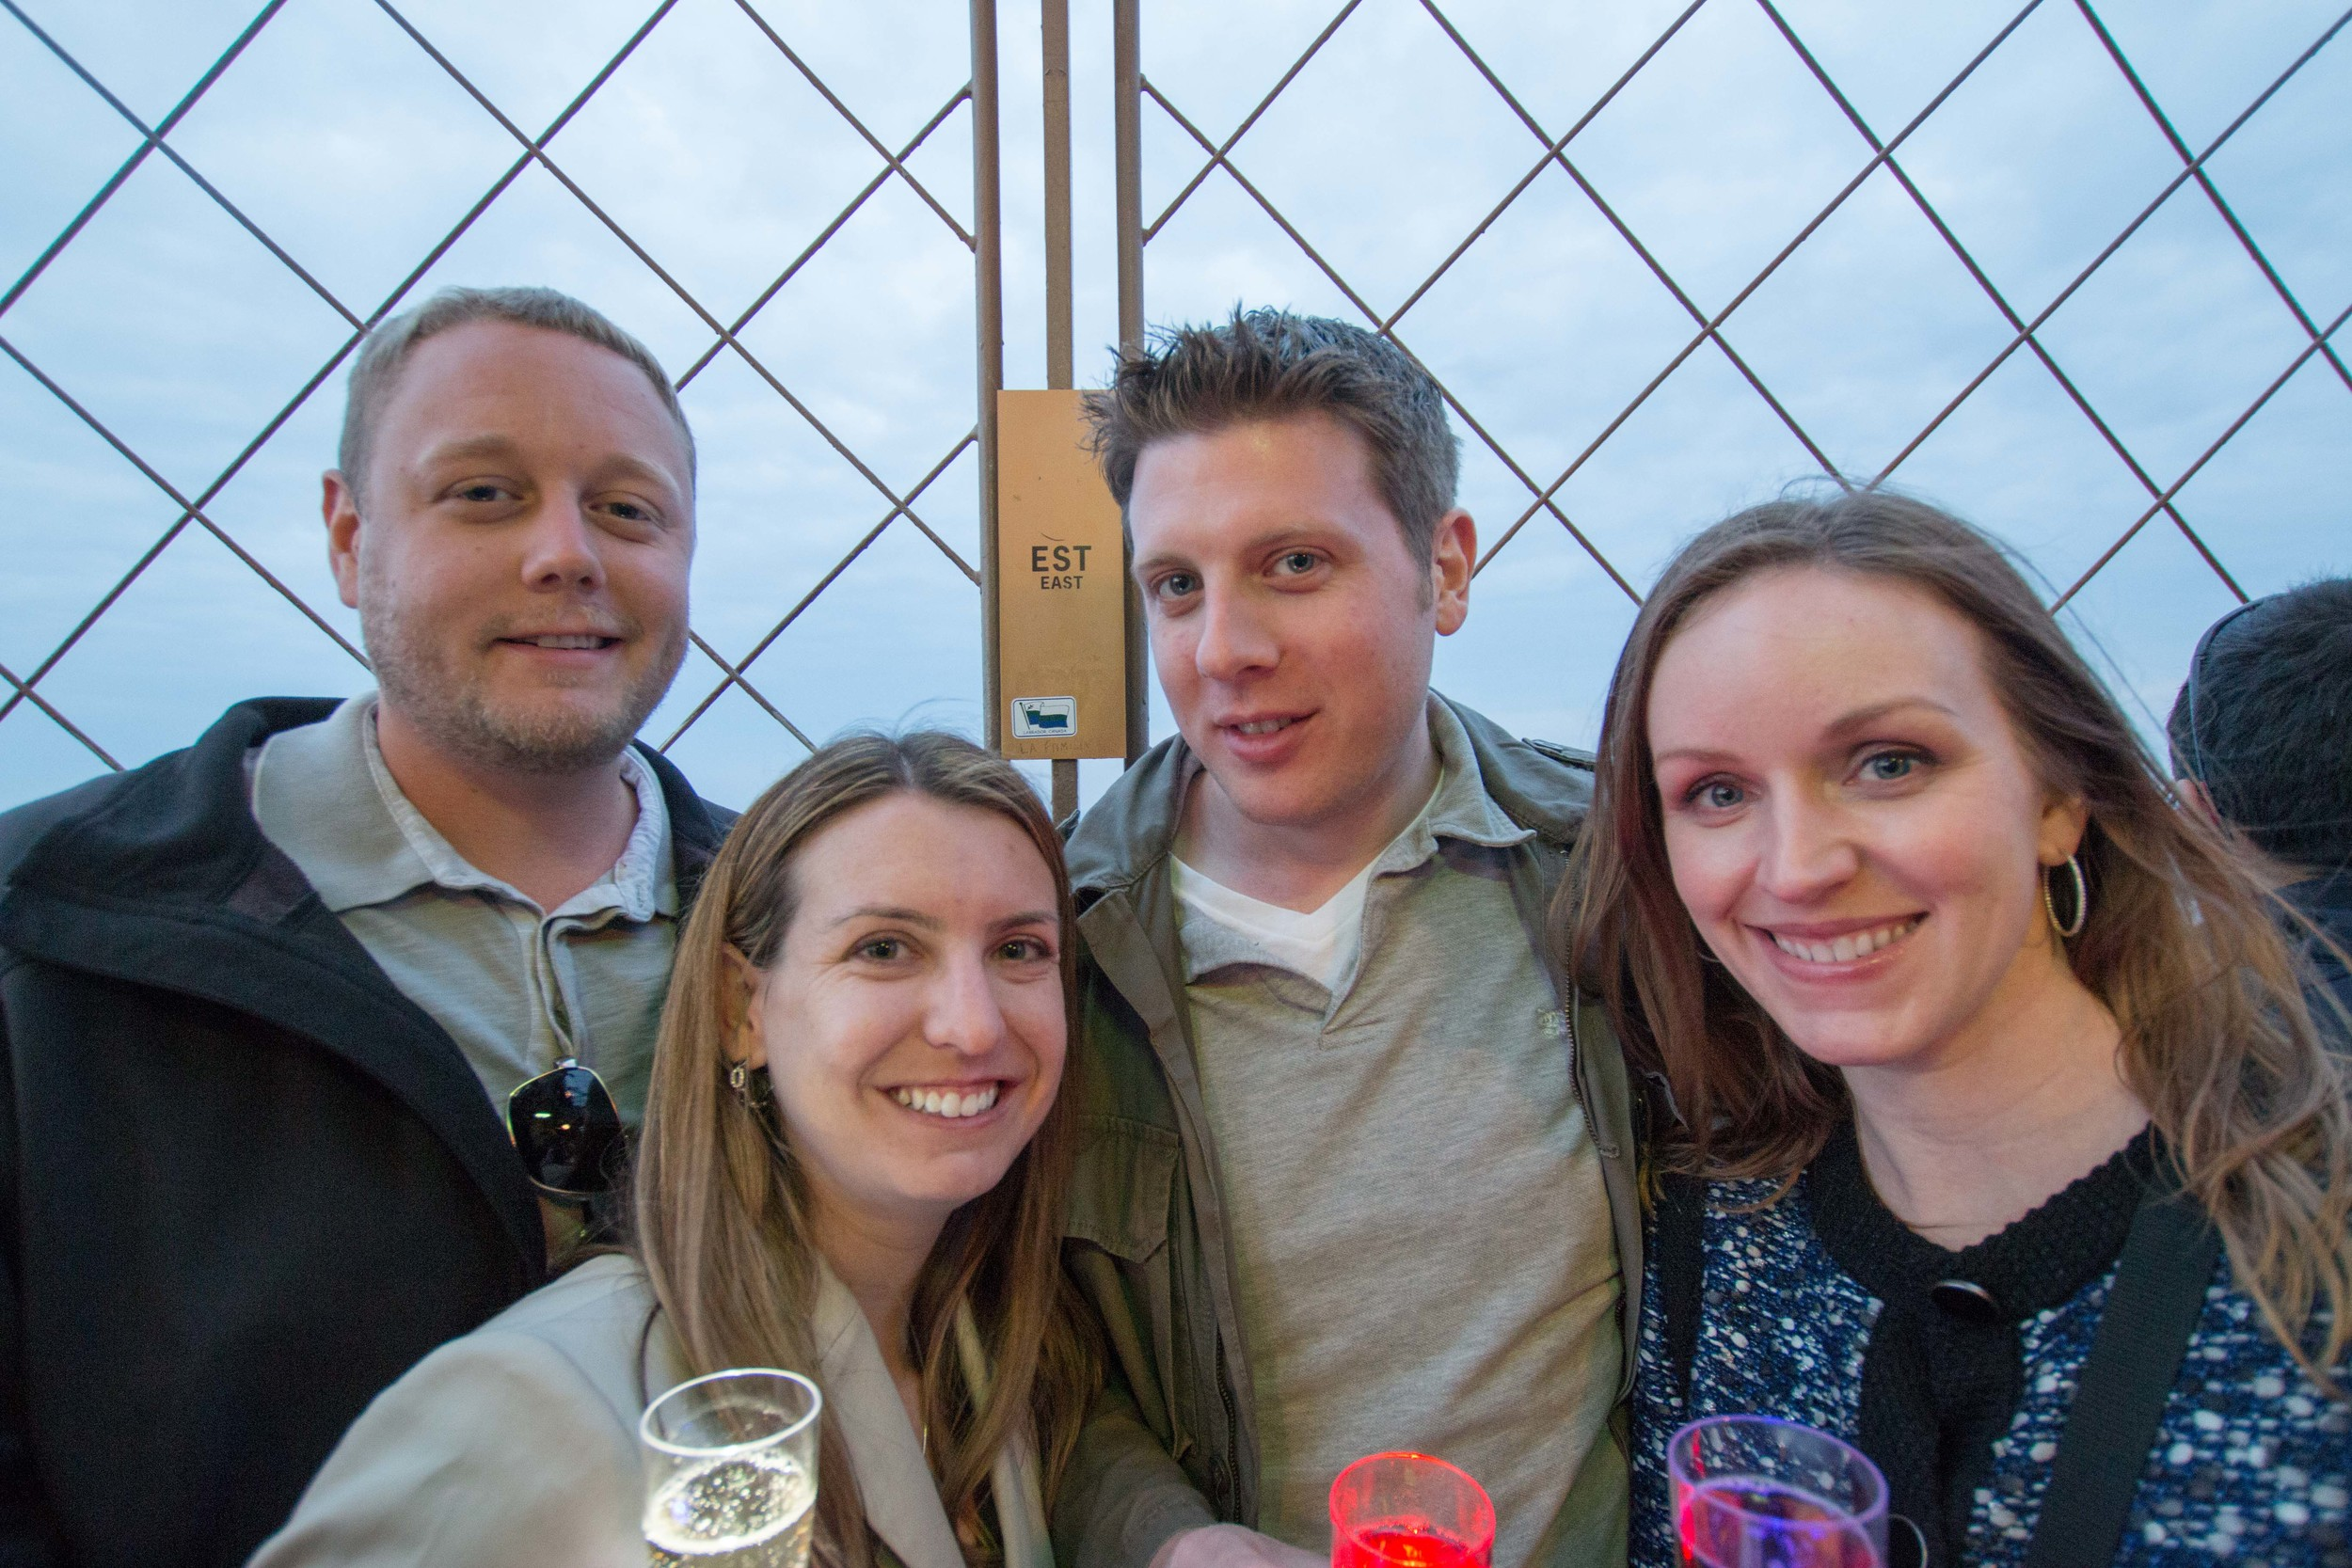 Scott, Sarah, Andrew and Justine enjoying their Champagne on the top of the the Eiffel Tower